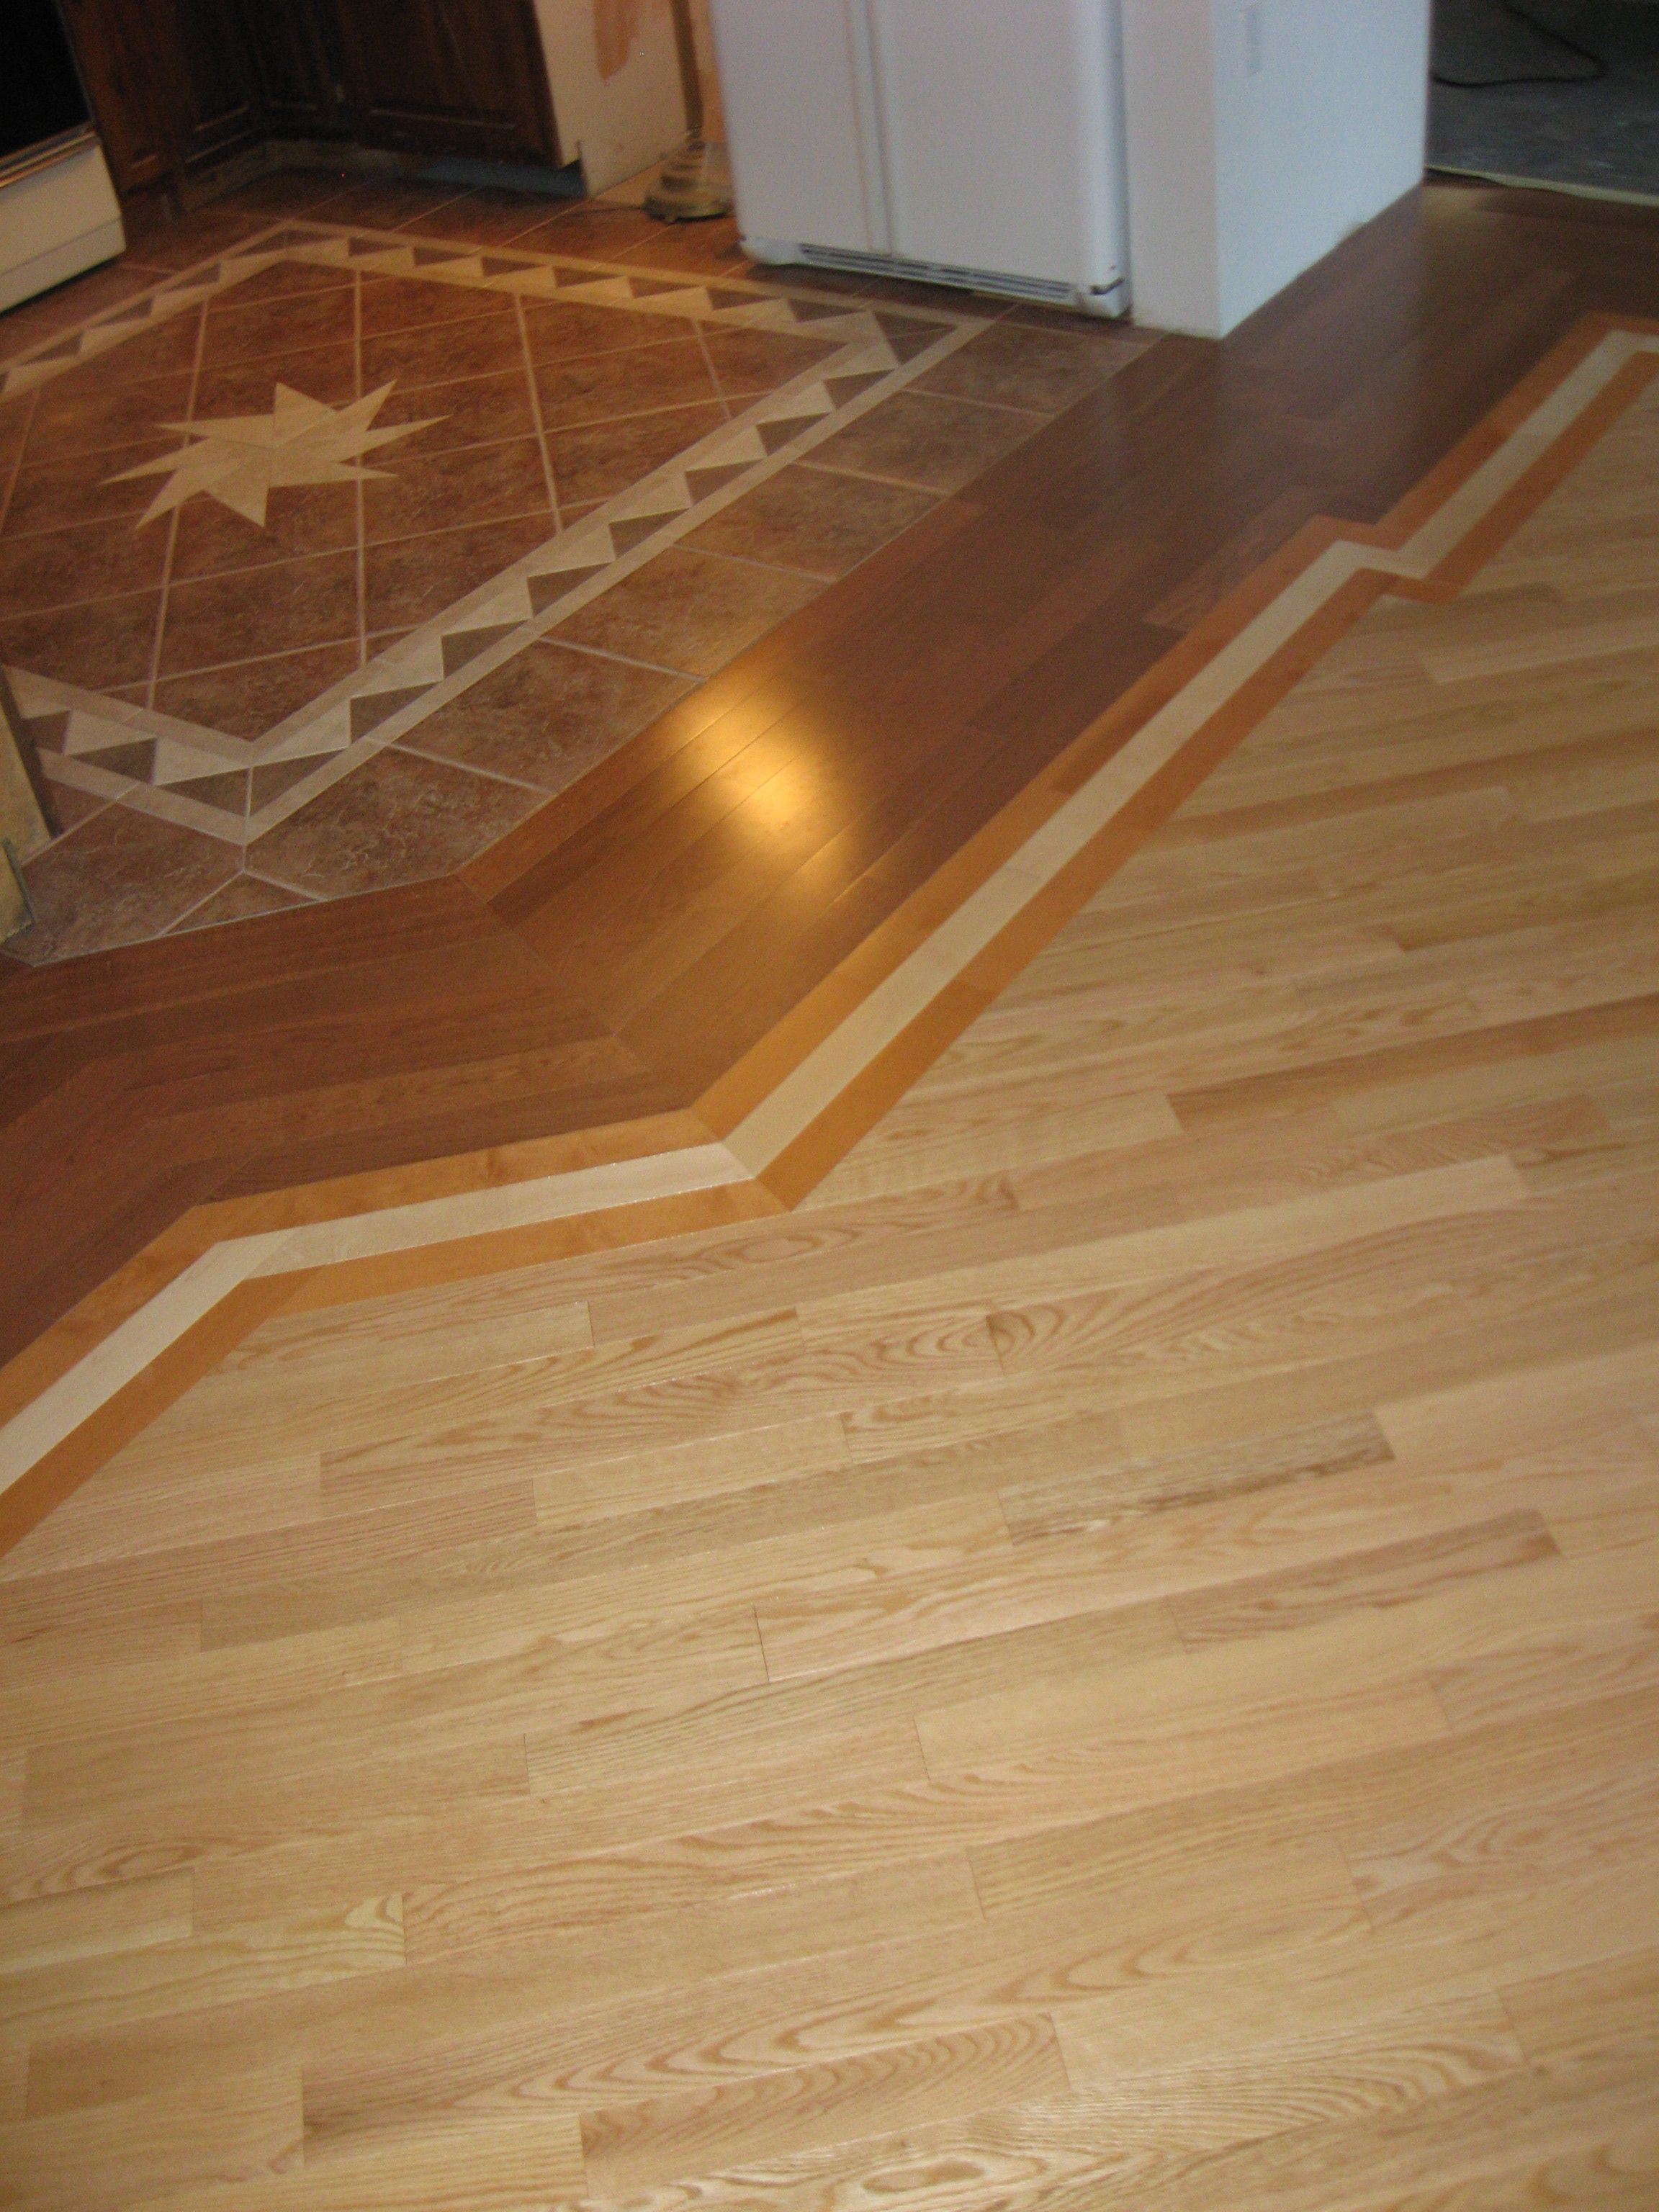 floor transitions between kitchen and tile - Google Search ...